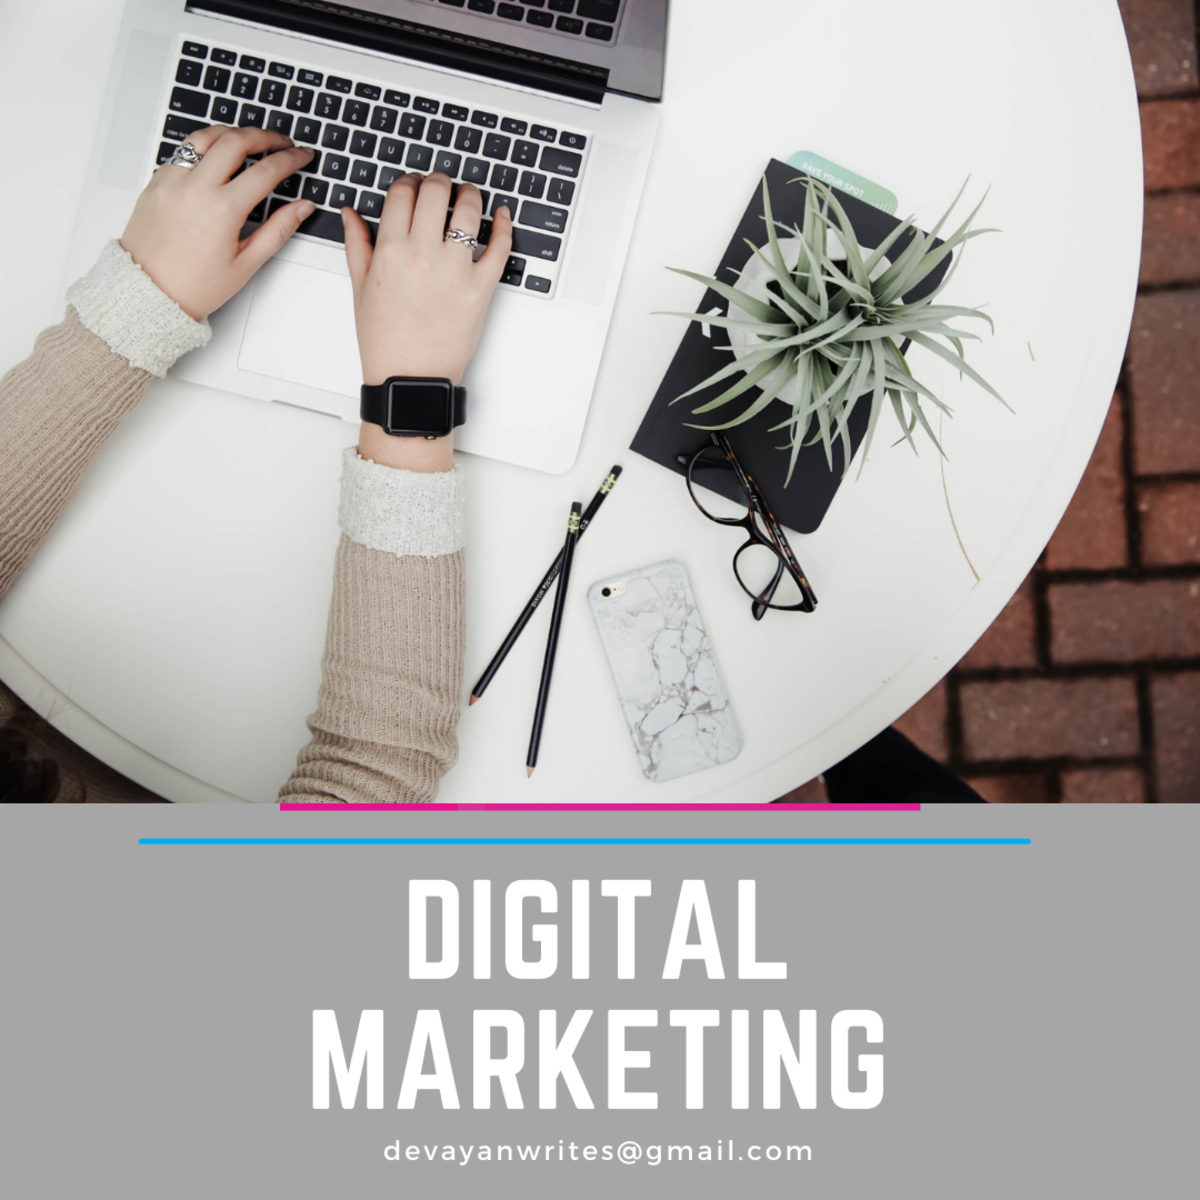 5 Evergreen Digital Marketing Tips to Lookout for